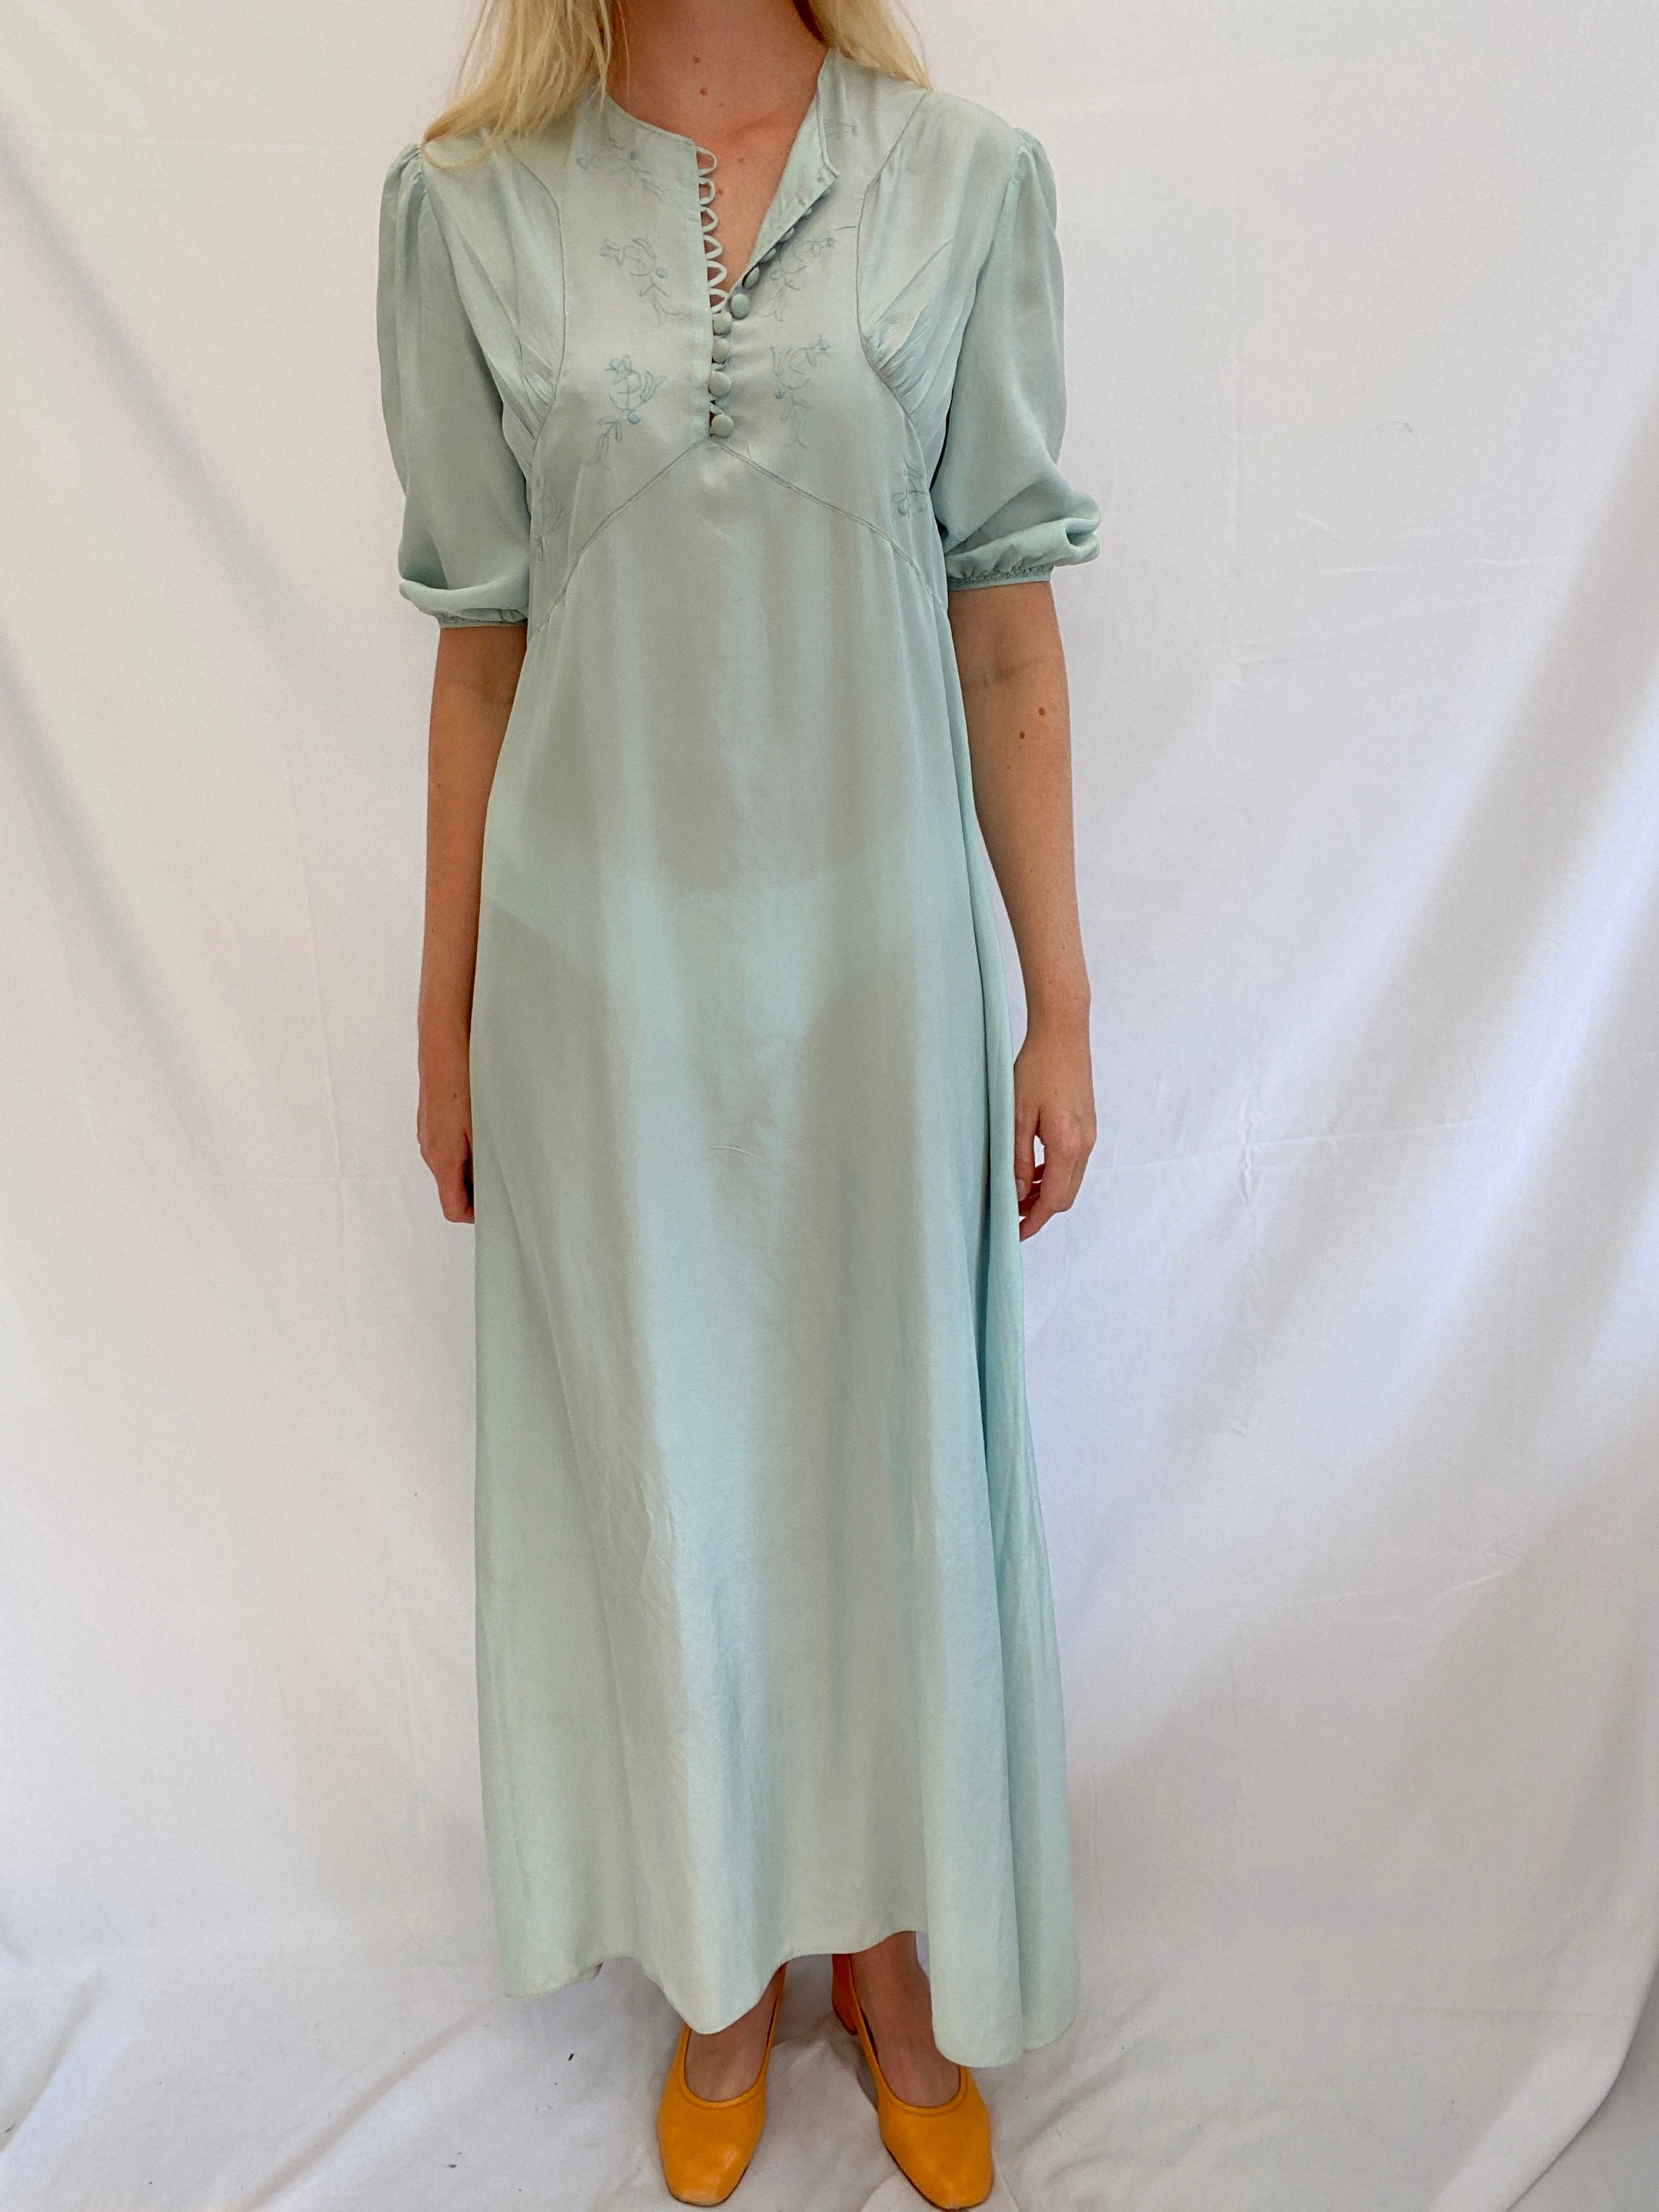 Ocean Blue Silk Dress with Puffed Sleeves